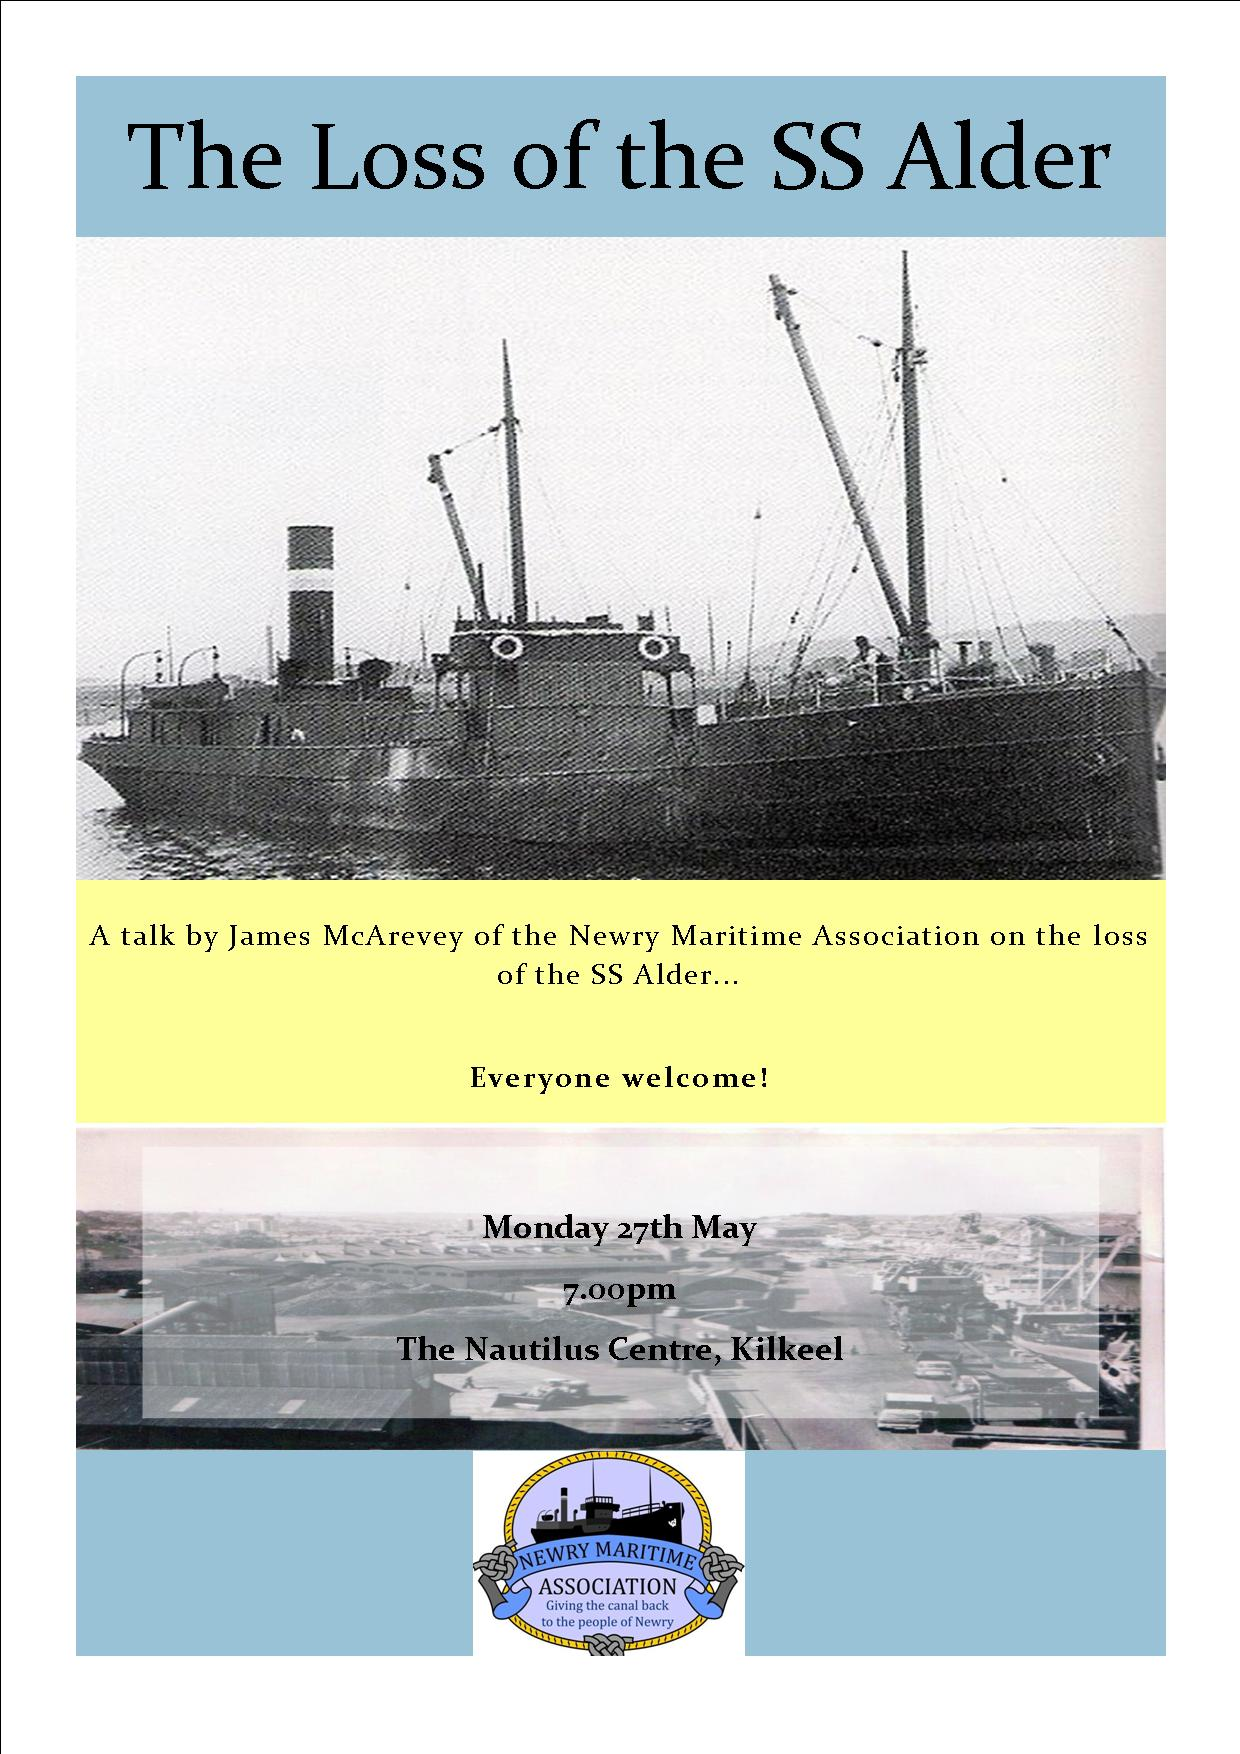 Loss of the SS Alder poster for an event which Tracing Your Mourne Roots helped organise